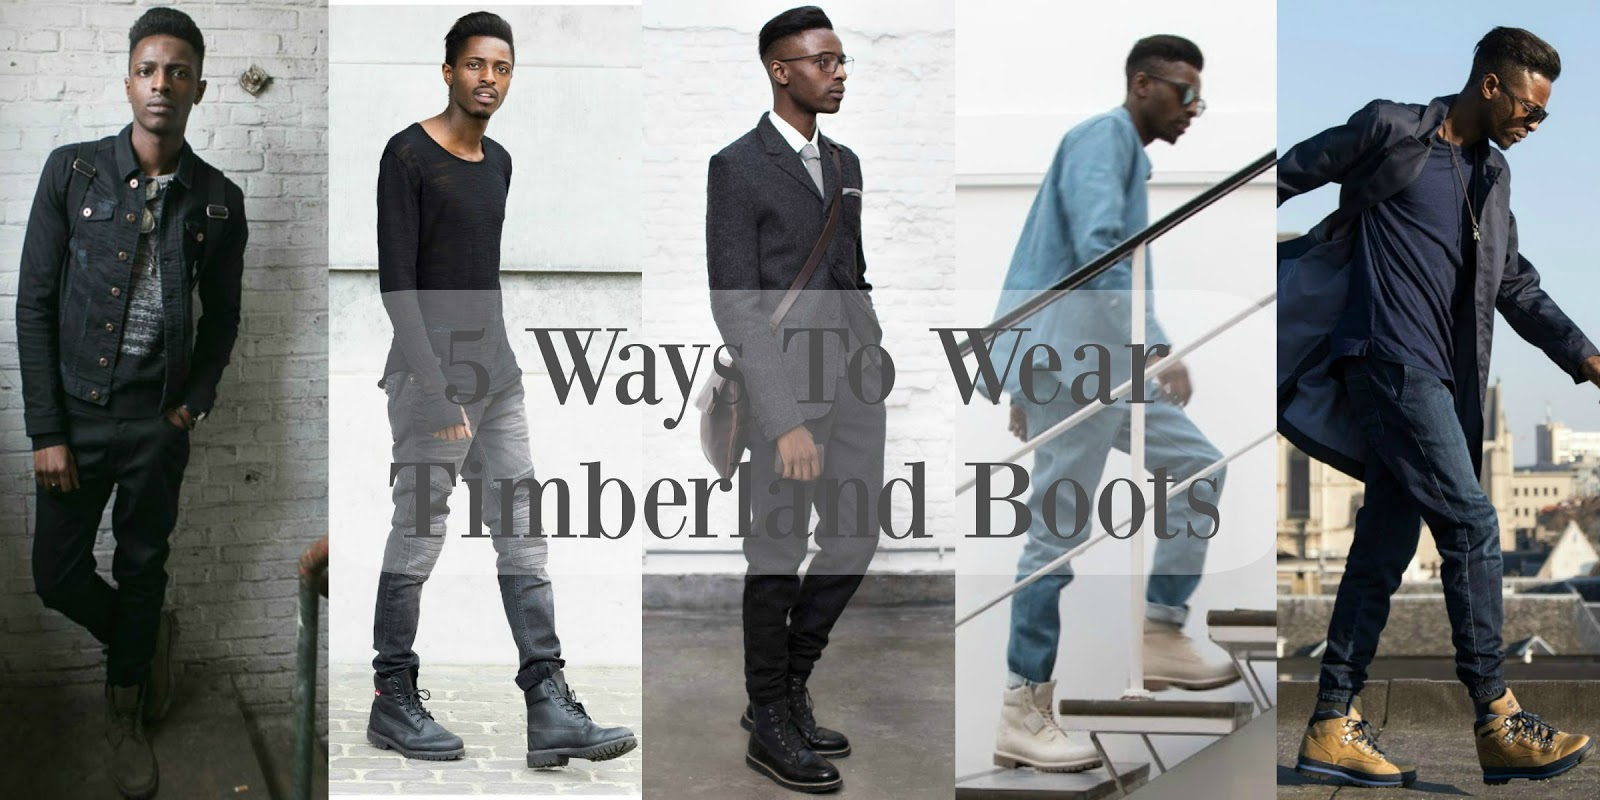 67fa1f42861 #1 : Smarten Up with Black Britton Hill Timbs. Sorry - not sorry - for  starting off with a not-so-obvious way to style your Timberland boots.